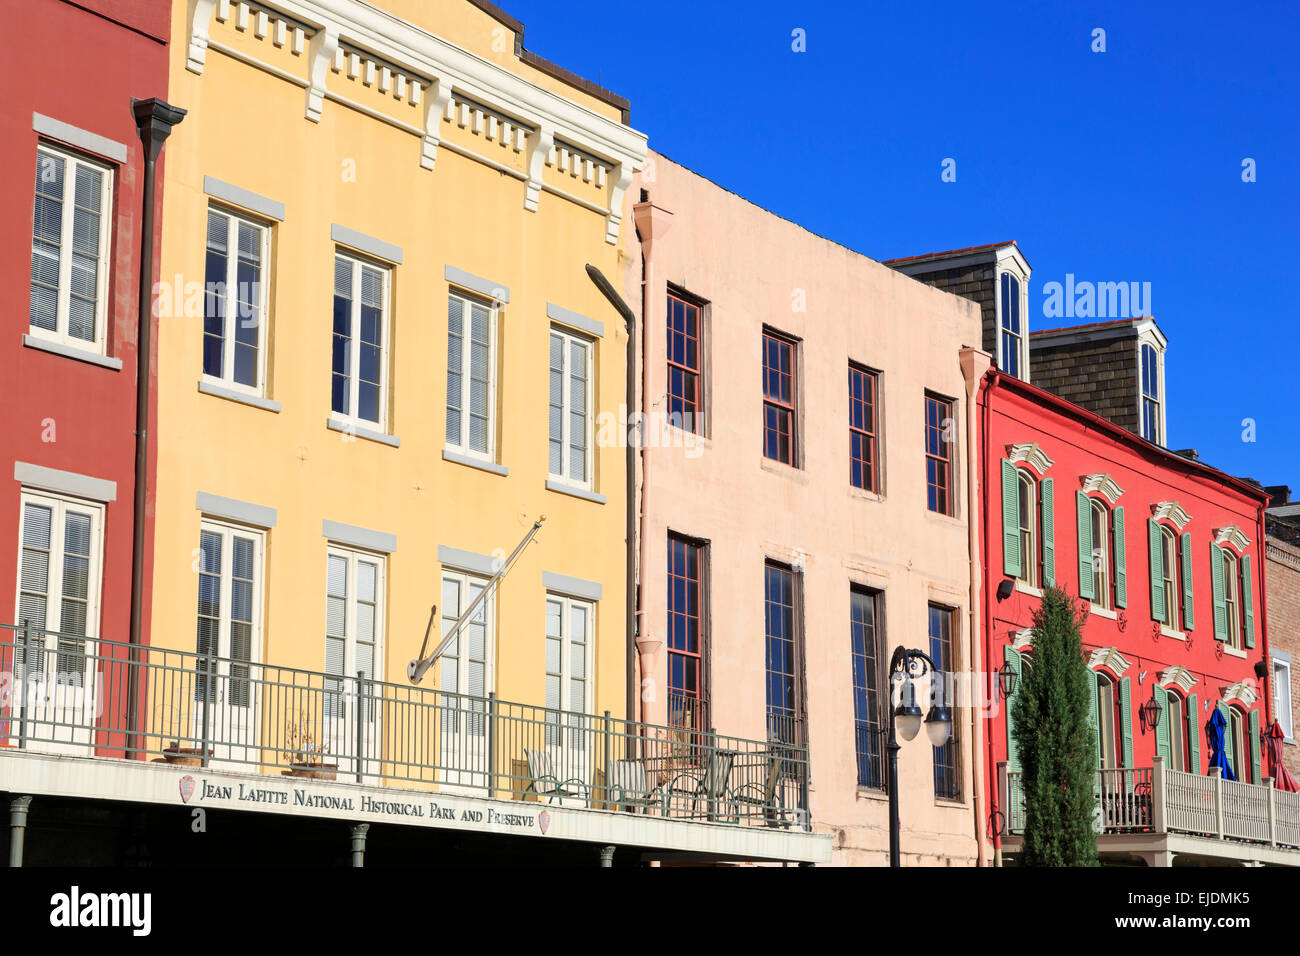 Decatur Street, French Quarter, New Orleans, Louisiana, USA - Stock Image